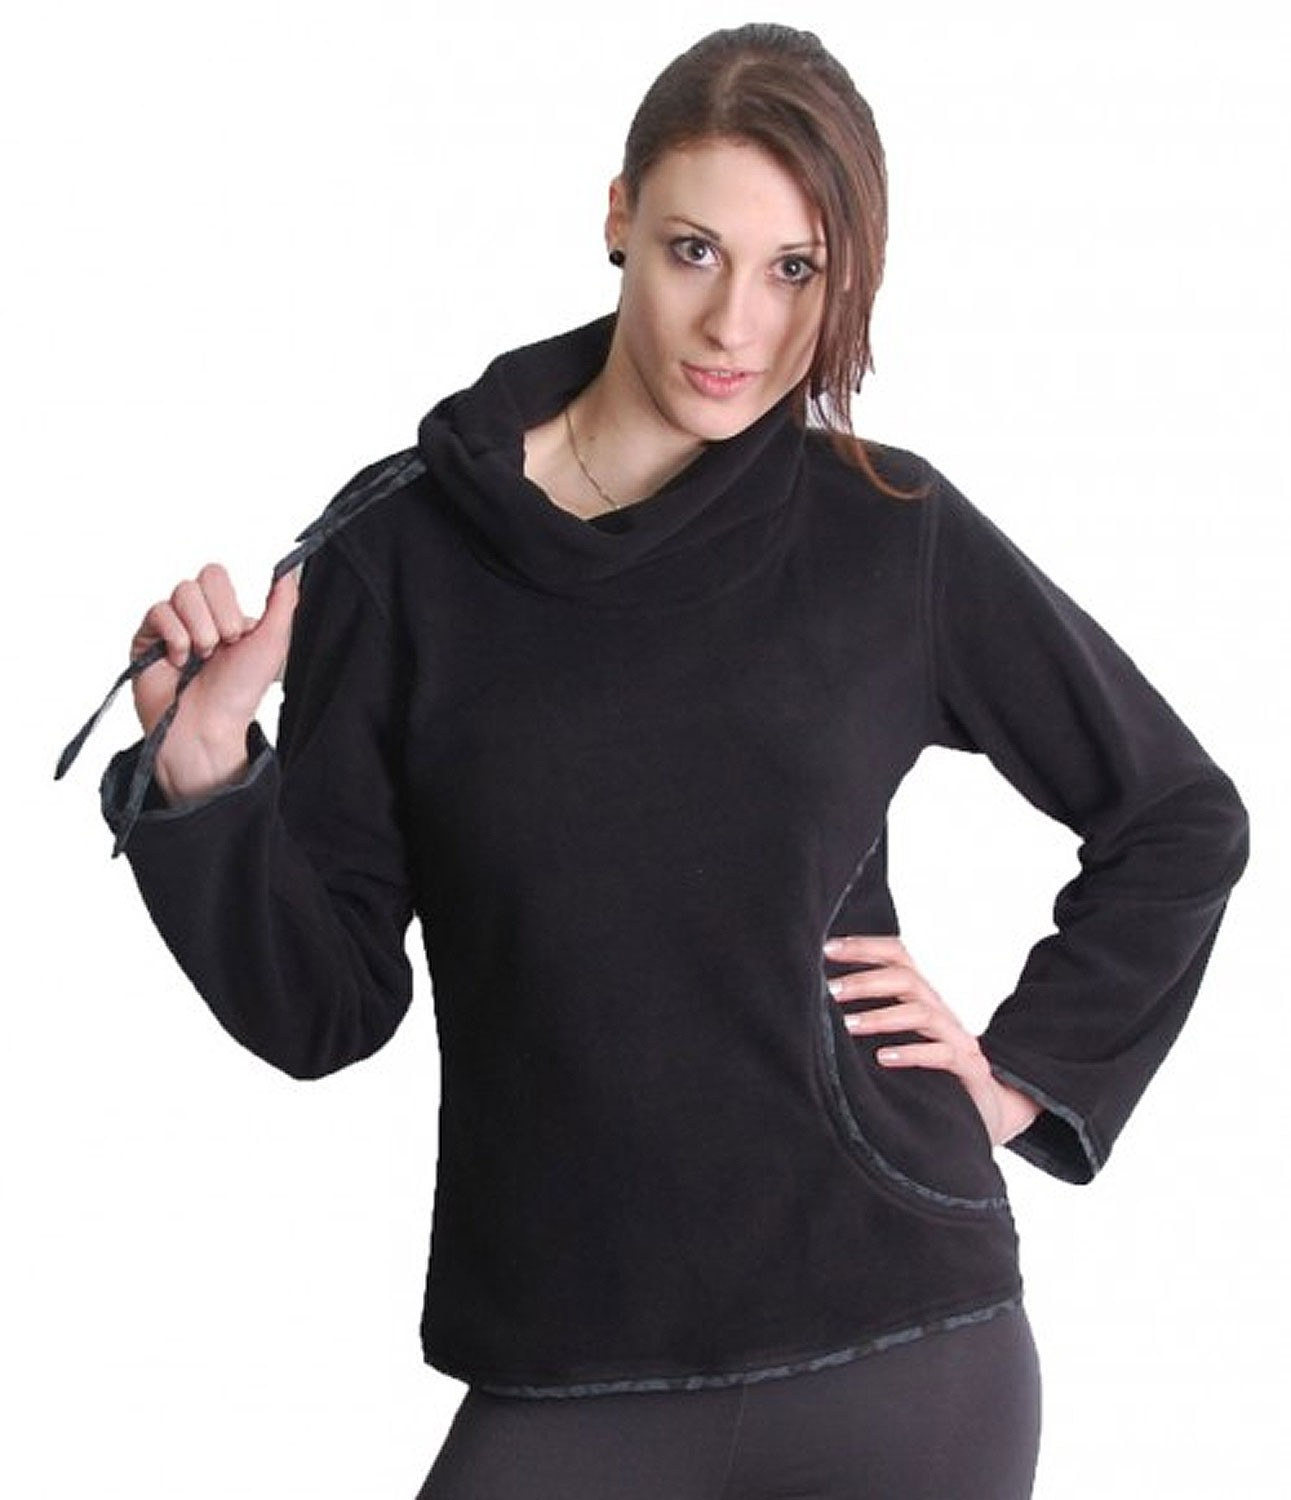 Extravagant Goa Fleece Sweater with a Wide Turtleneck Black/Grey